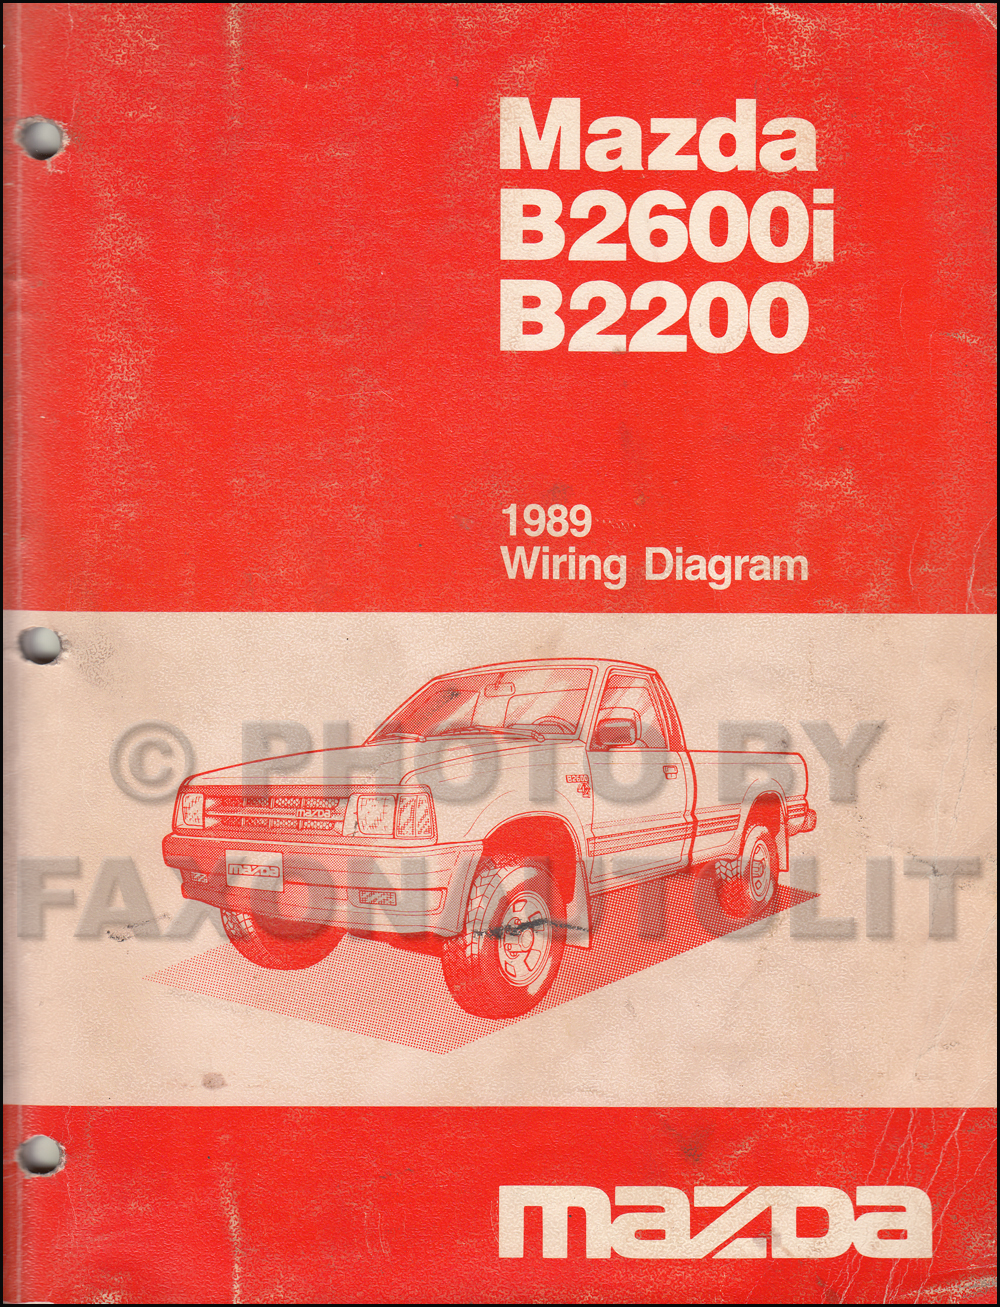 [SCHEMATICS_49CH]  1993 Mazda B2600i Wiring Diagram Diagram Base Website Wiring Diagram -  NEWSVENNDIAGRAM.ROUNDABIKE.IT | Mazda Bravo Ignition Wiring Diagram |  | Diagram Base Website Full Edition - roundabike